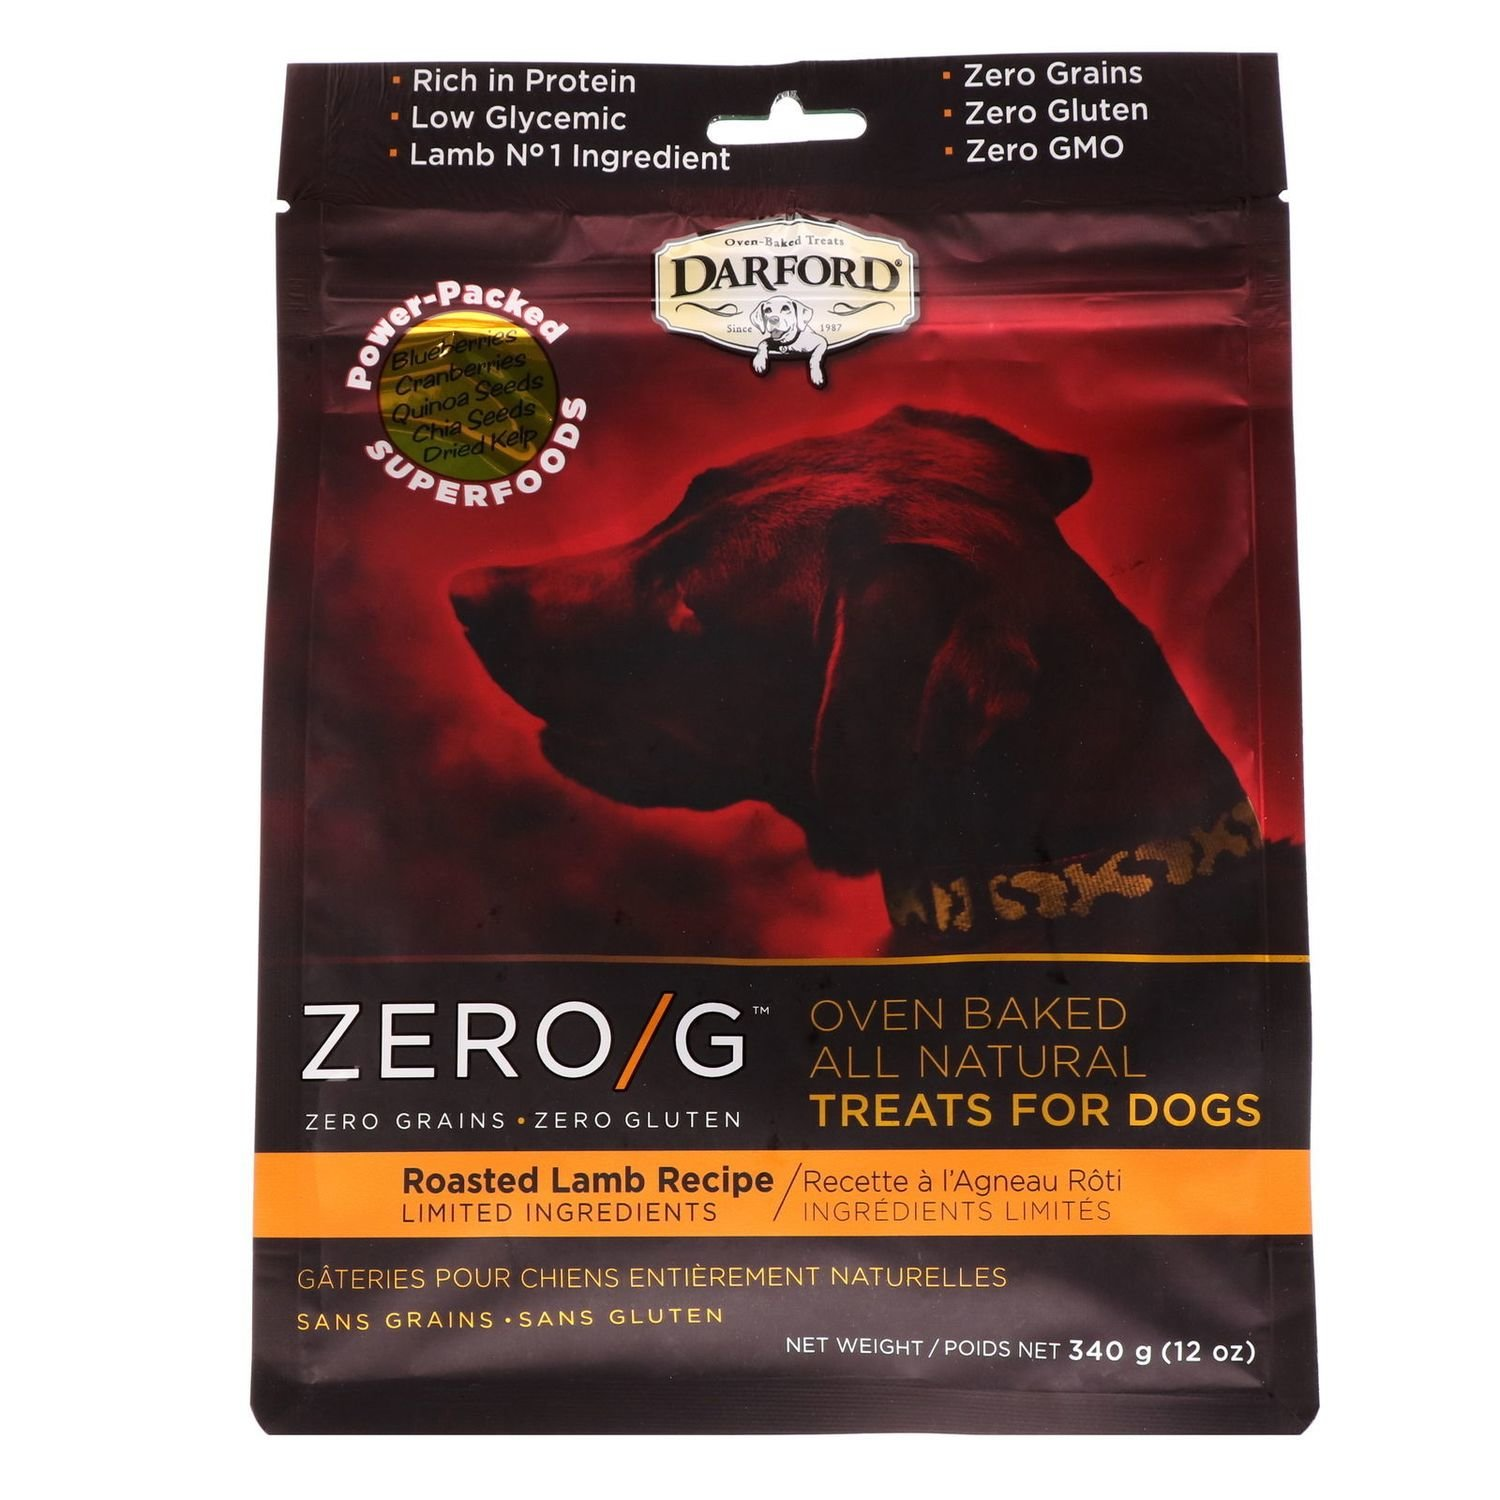 Darford Zero/g Oven Baked All Natural Dog Treats Roasted Lamb 12oz (2/19) (T.F2/DT)